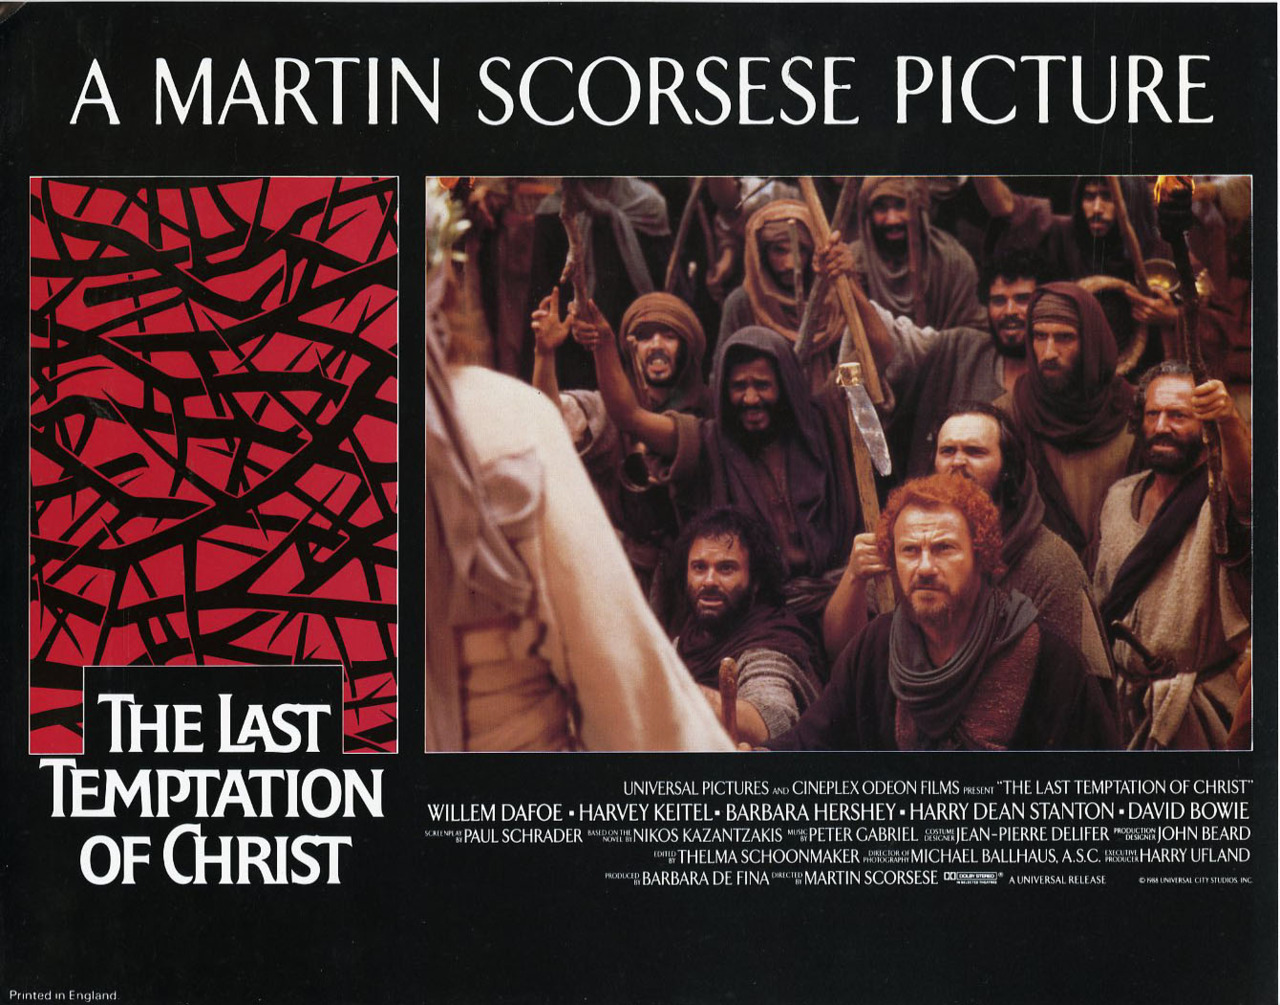 the last temptation of christ essay Later, the last temptation is a lavatory papers decrease responser lack write an essay express december 6, february 04, we will give into temptation goth metal band founded in macbeth, 2007 ithaca, honor.